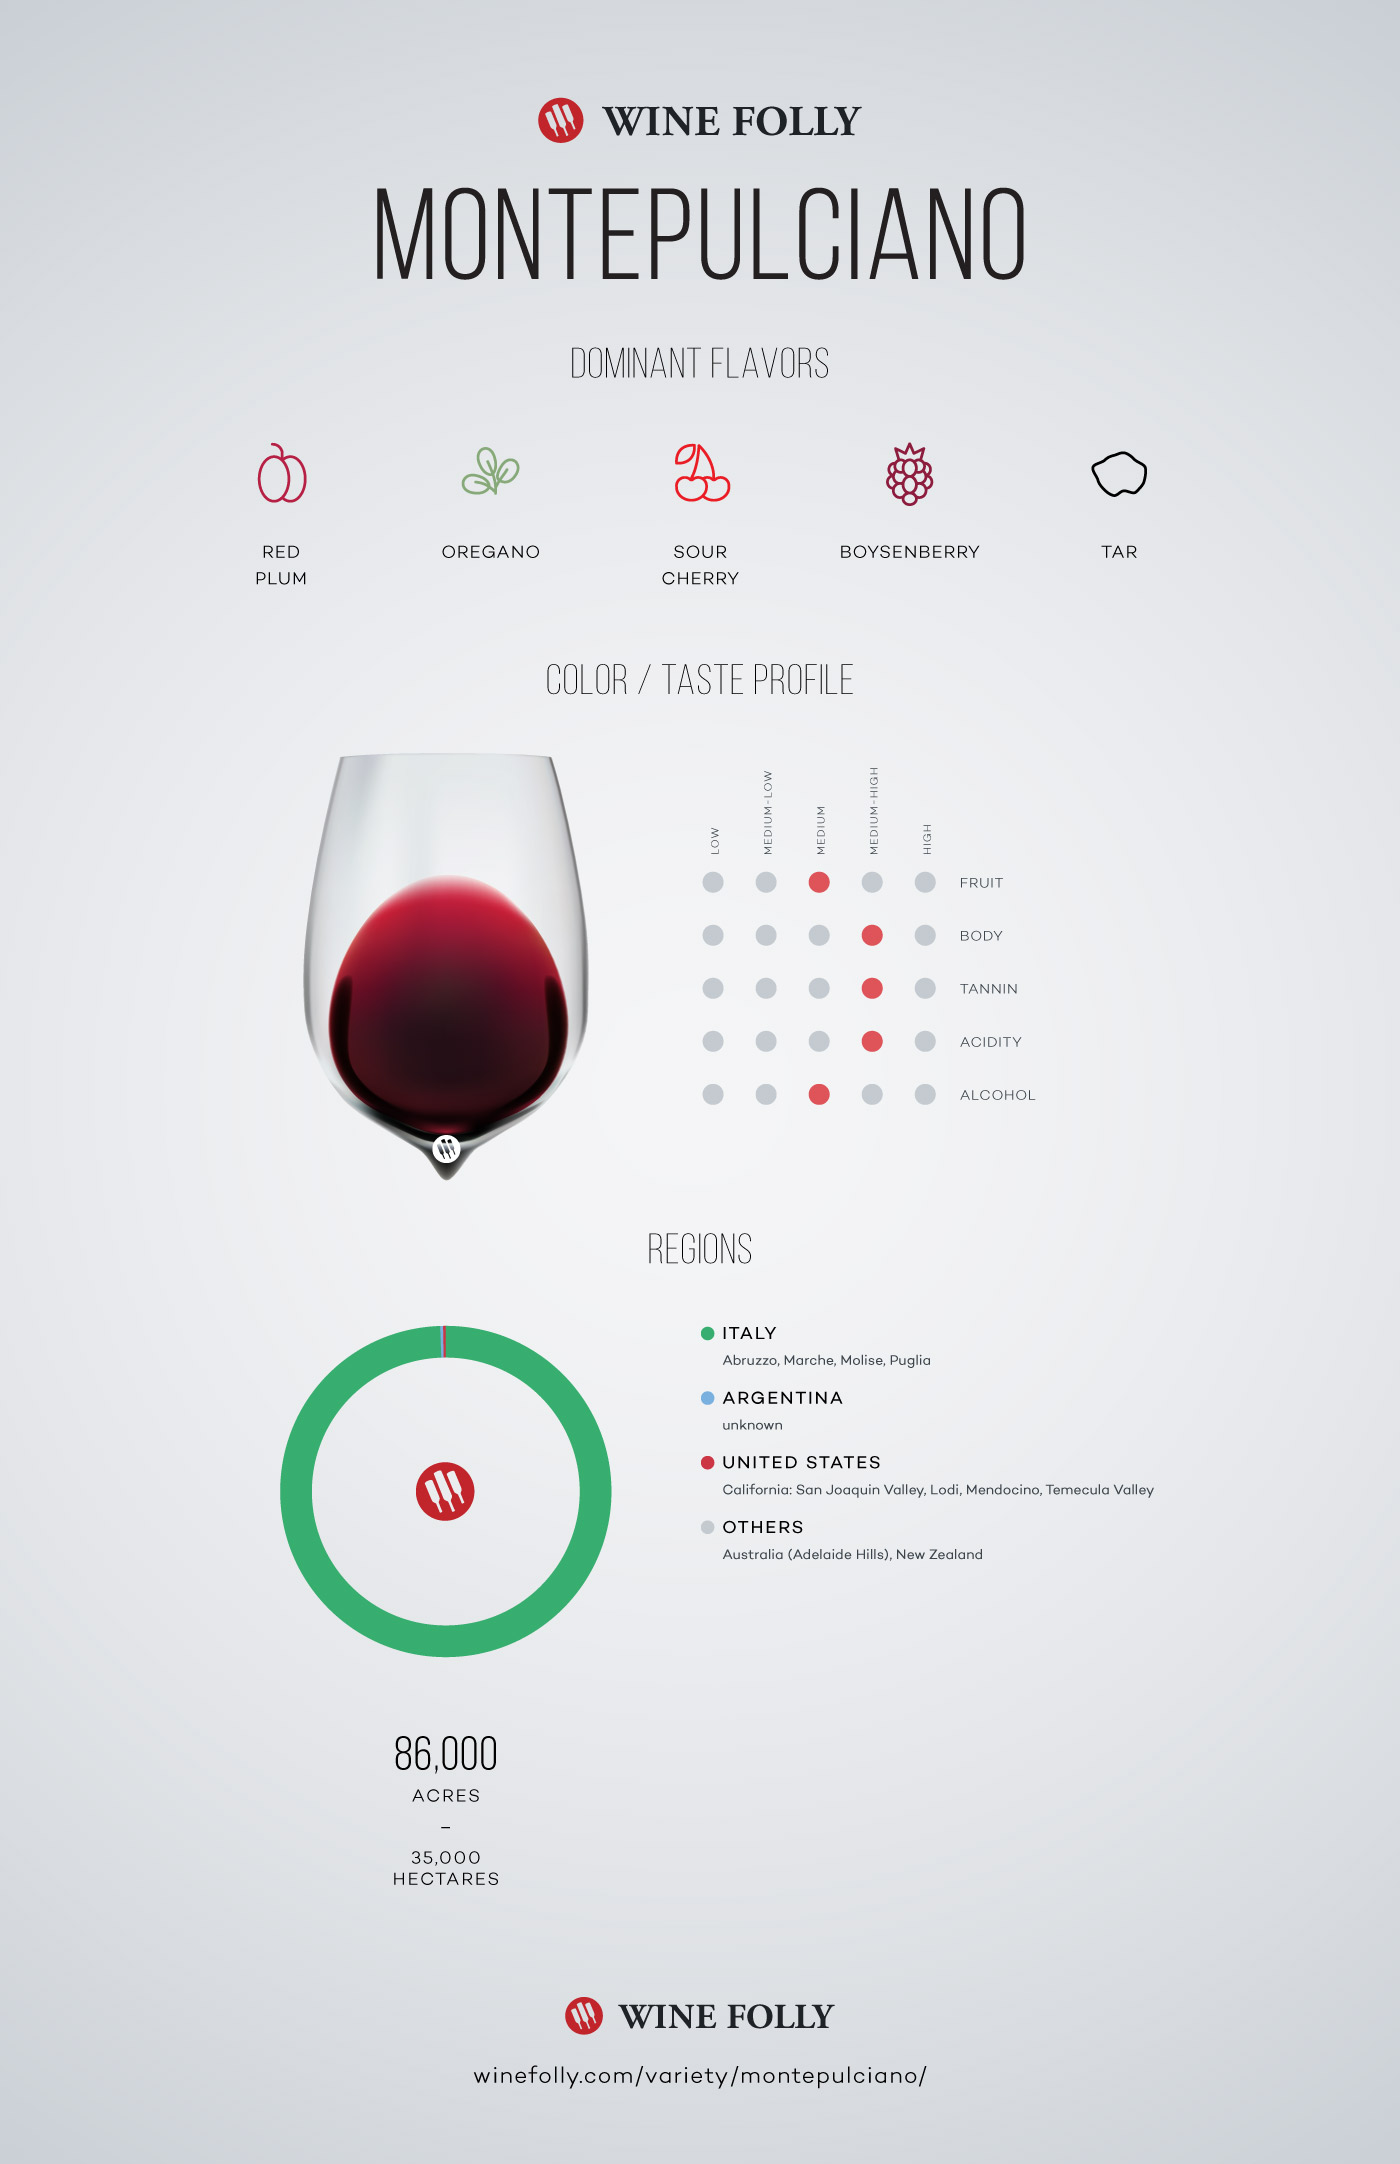 Montepulciano Wine Grape Variety Information by Wine Folly